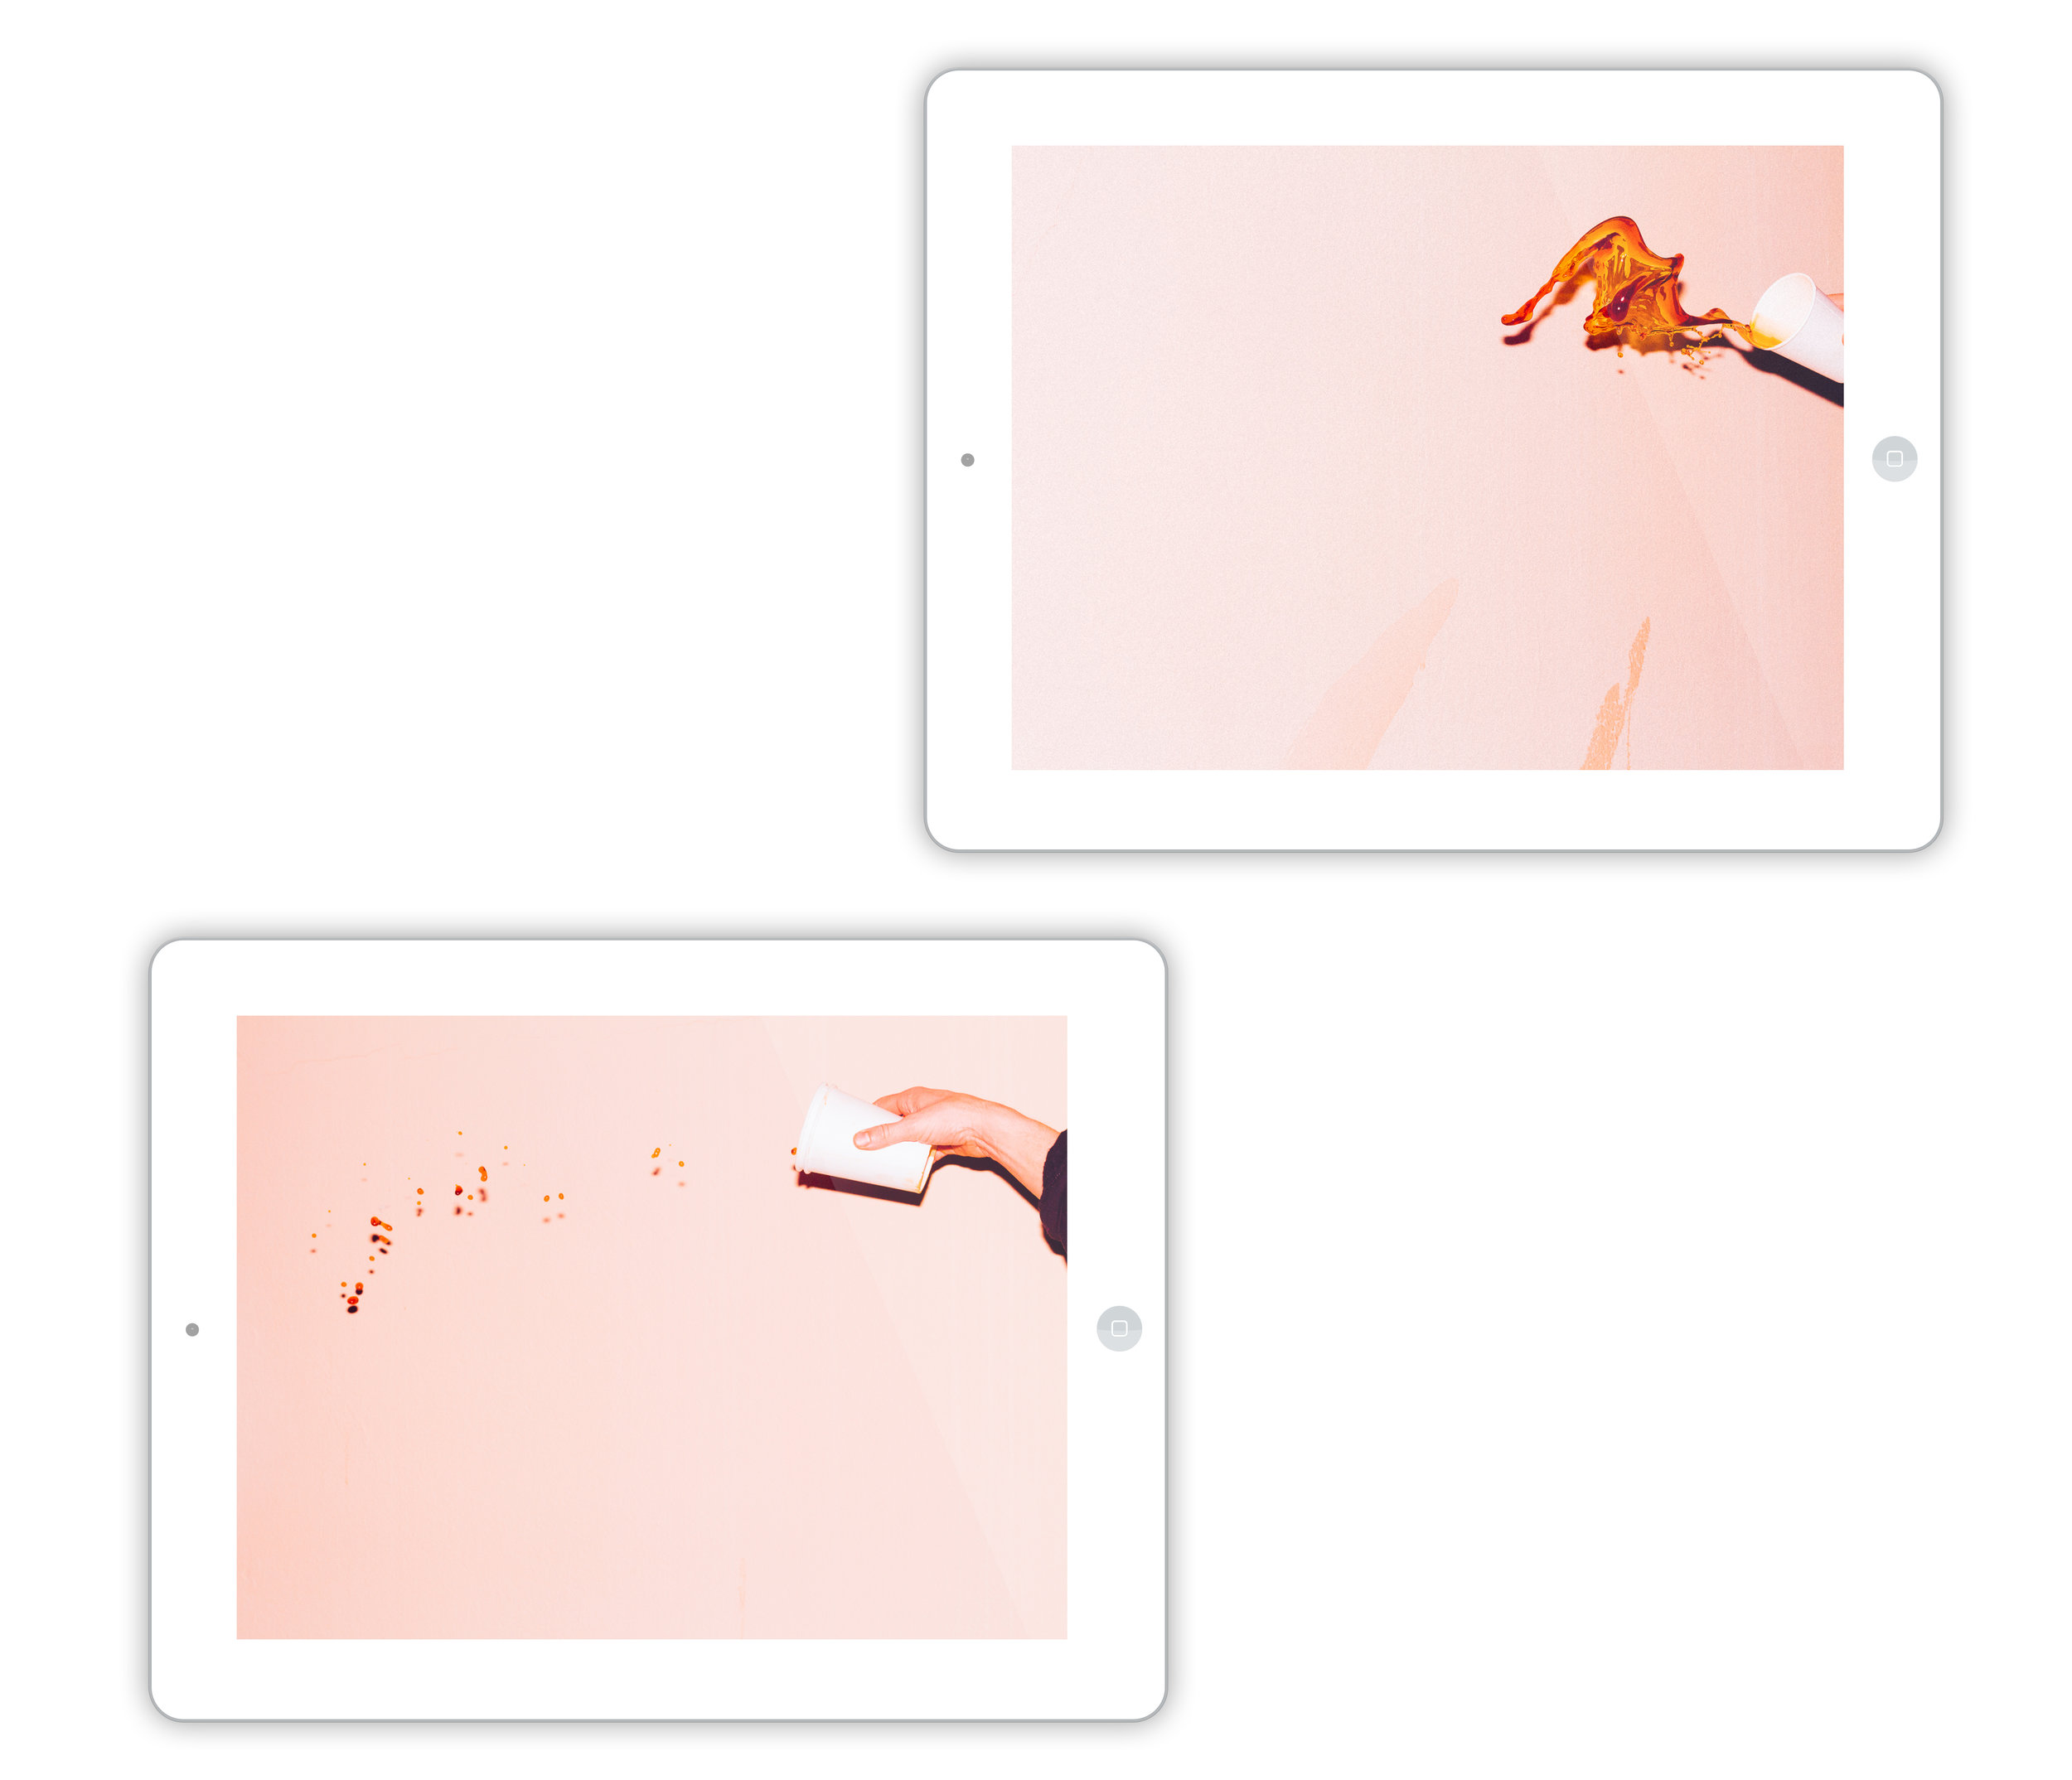 iPad Cups Landscape x2 01 down.jpg